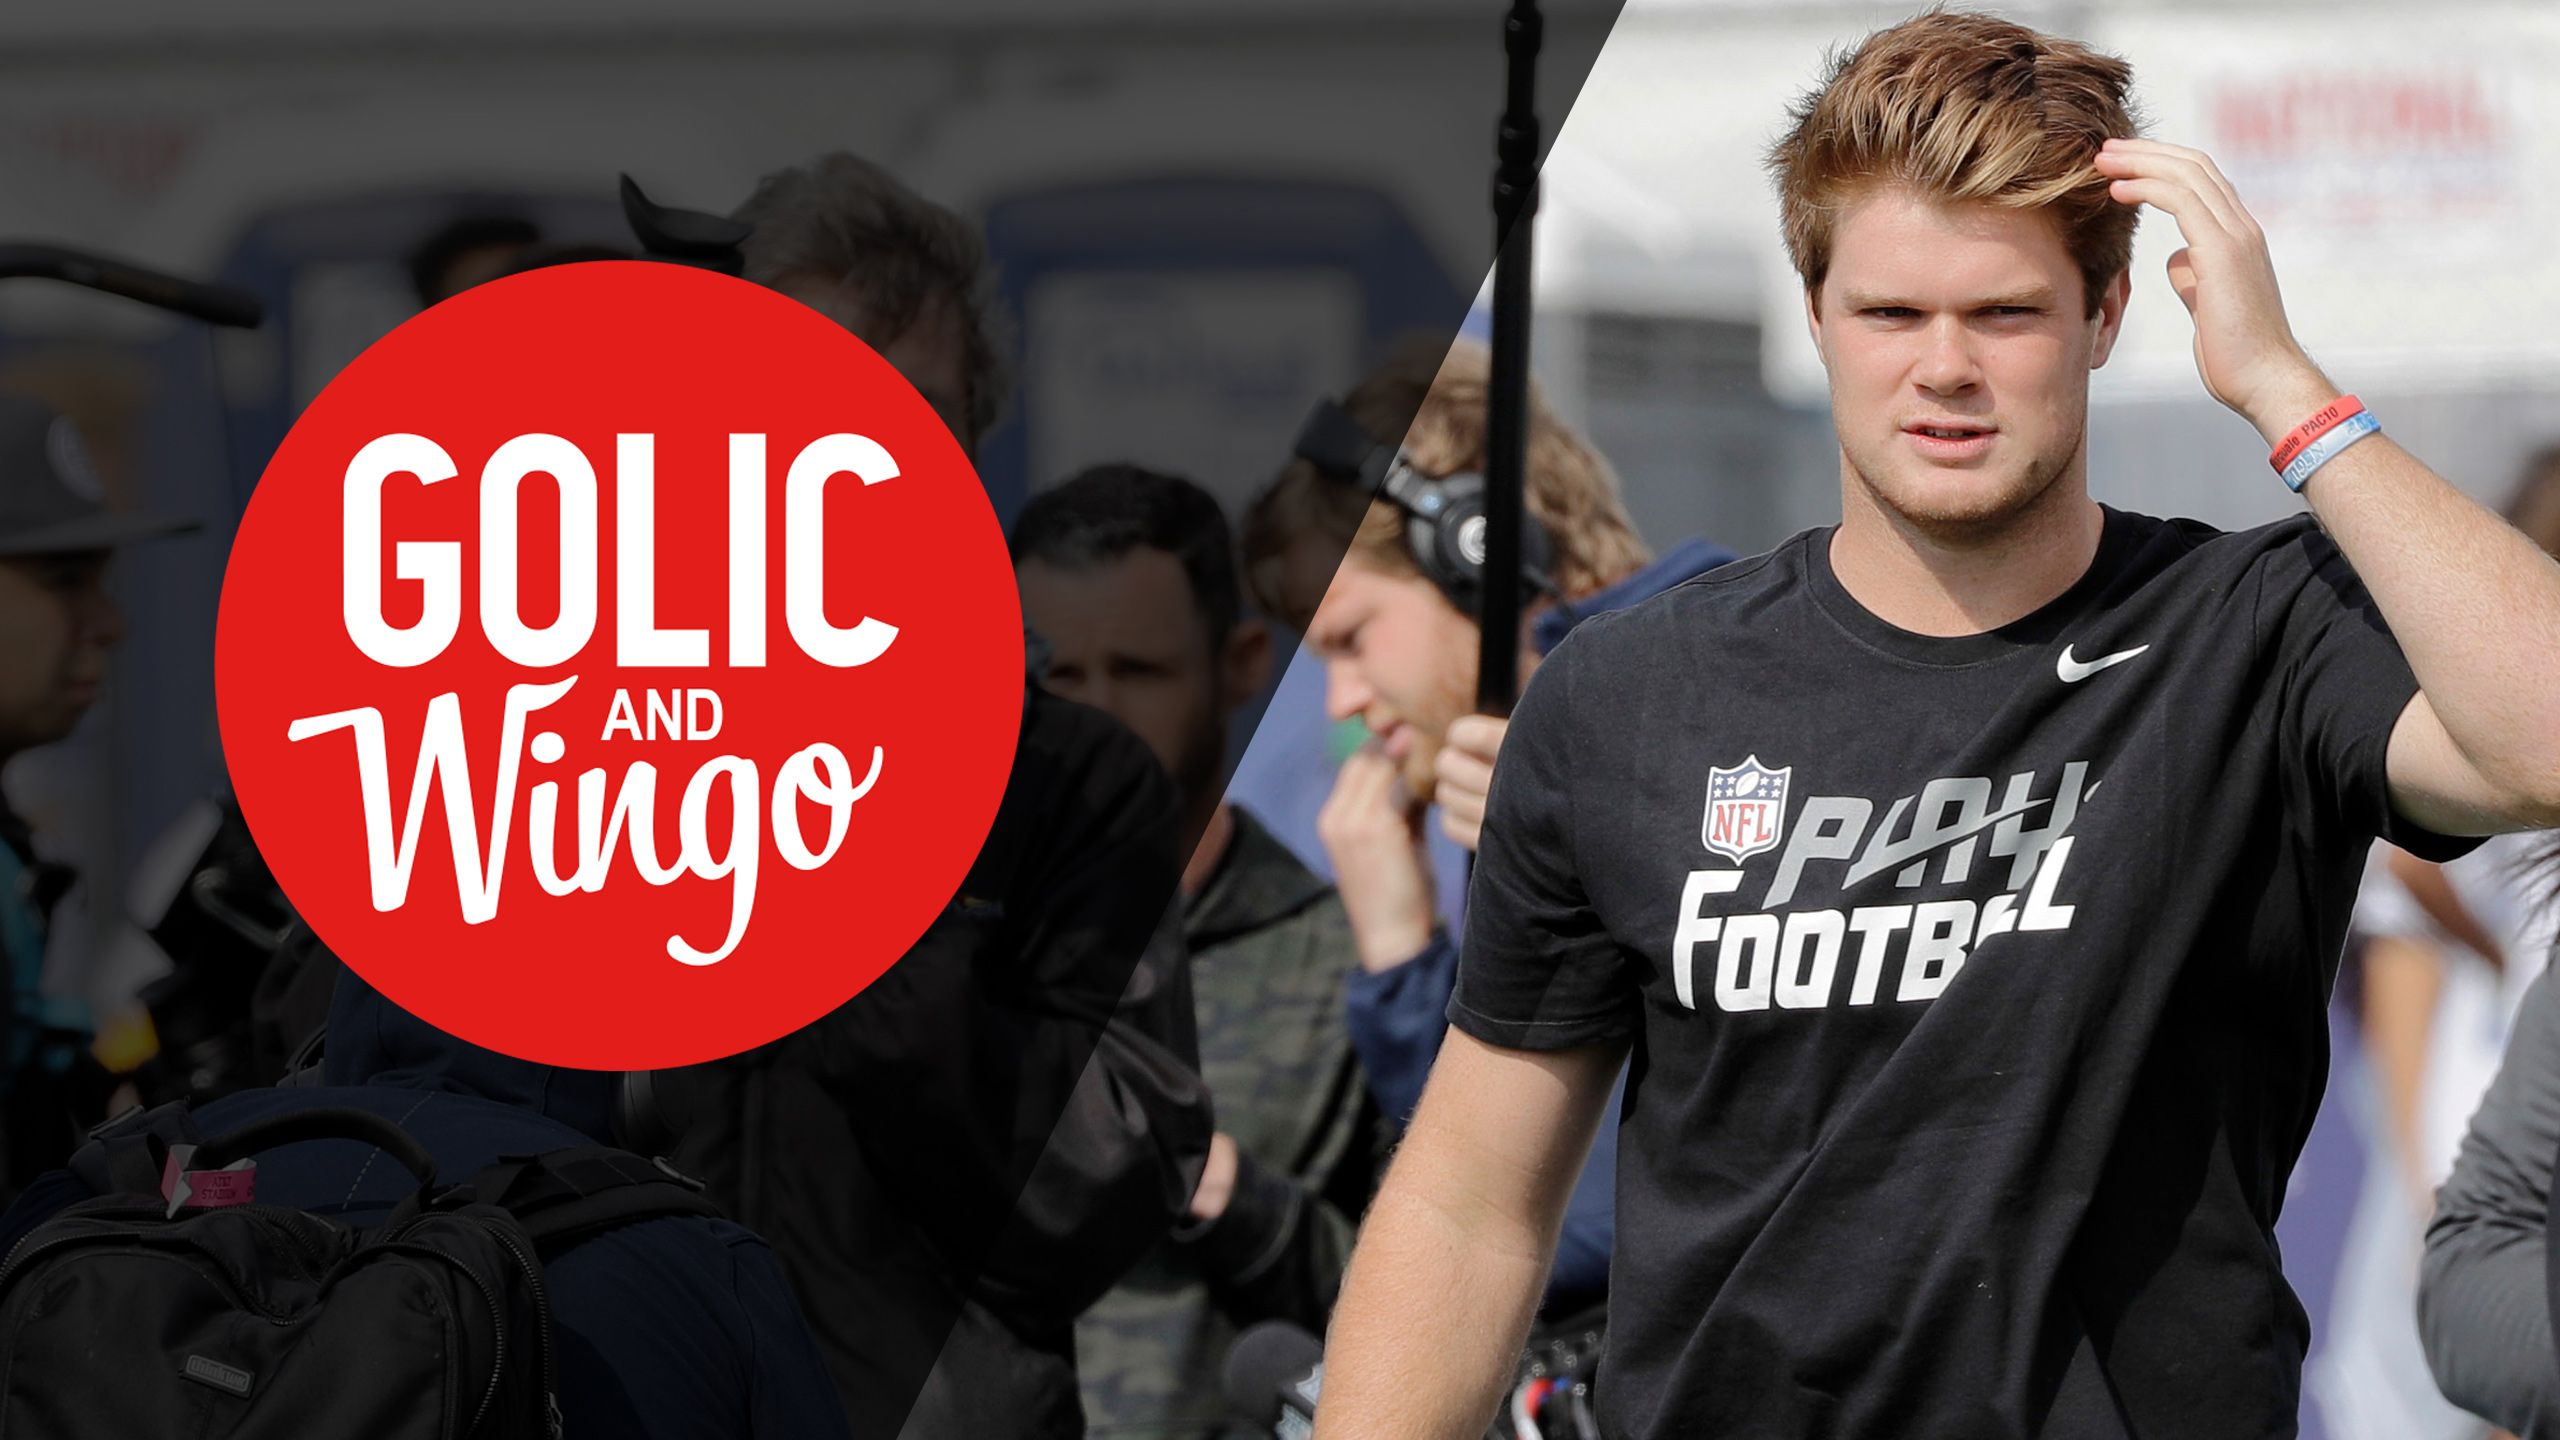 Thu, 4/26 - Golic and Wingo